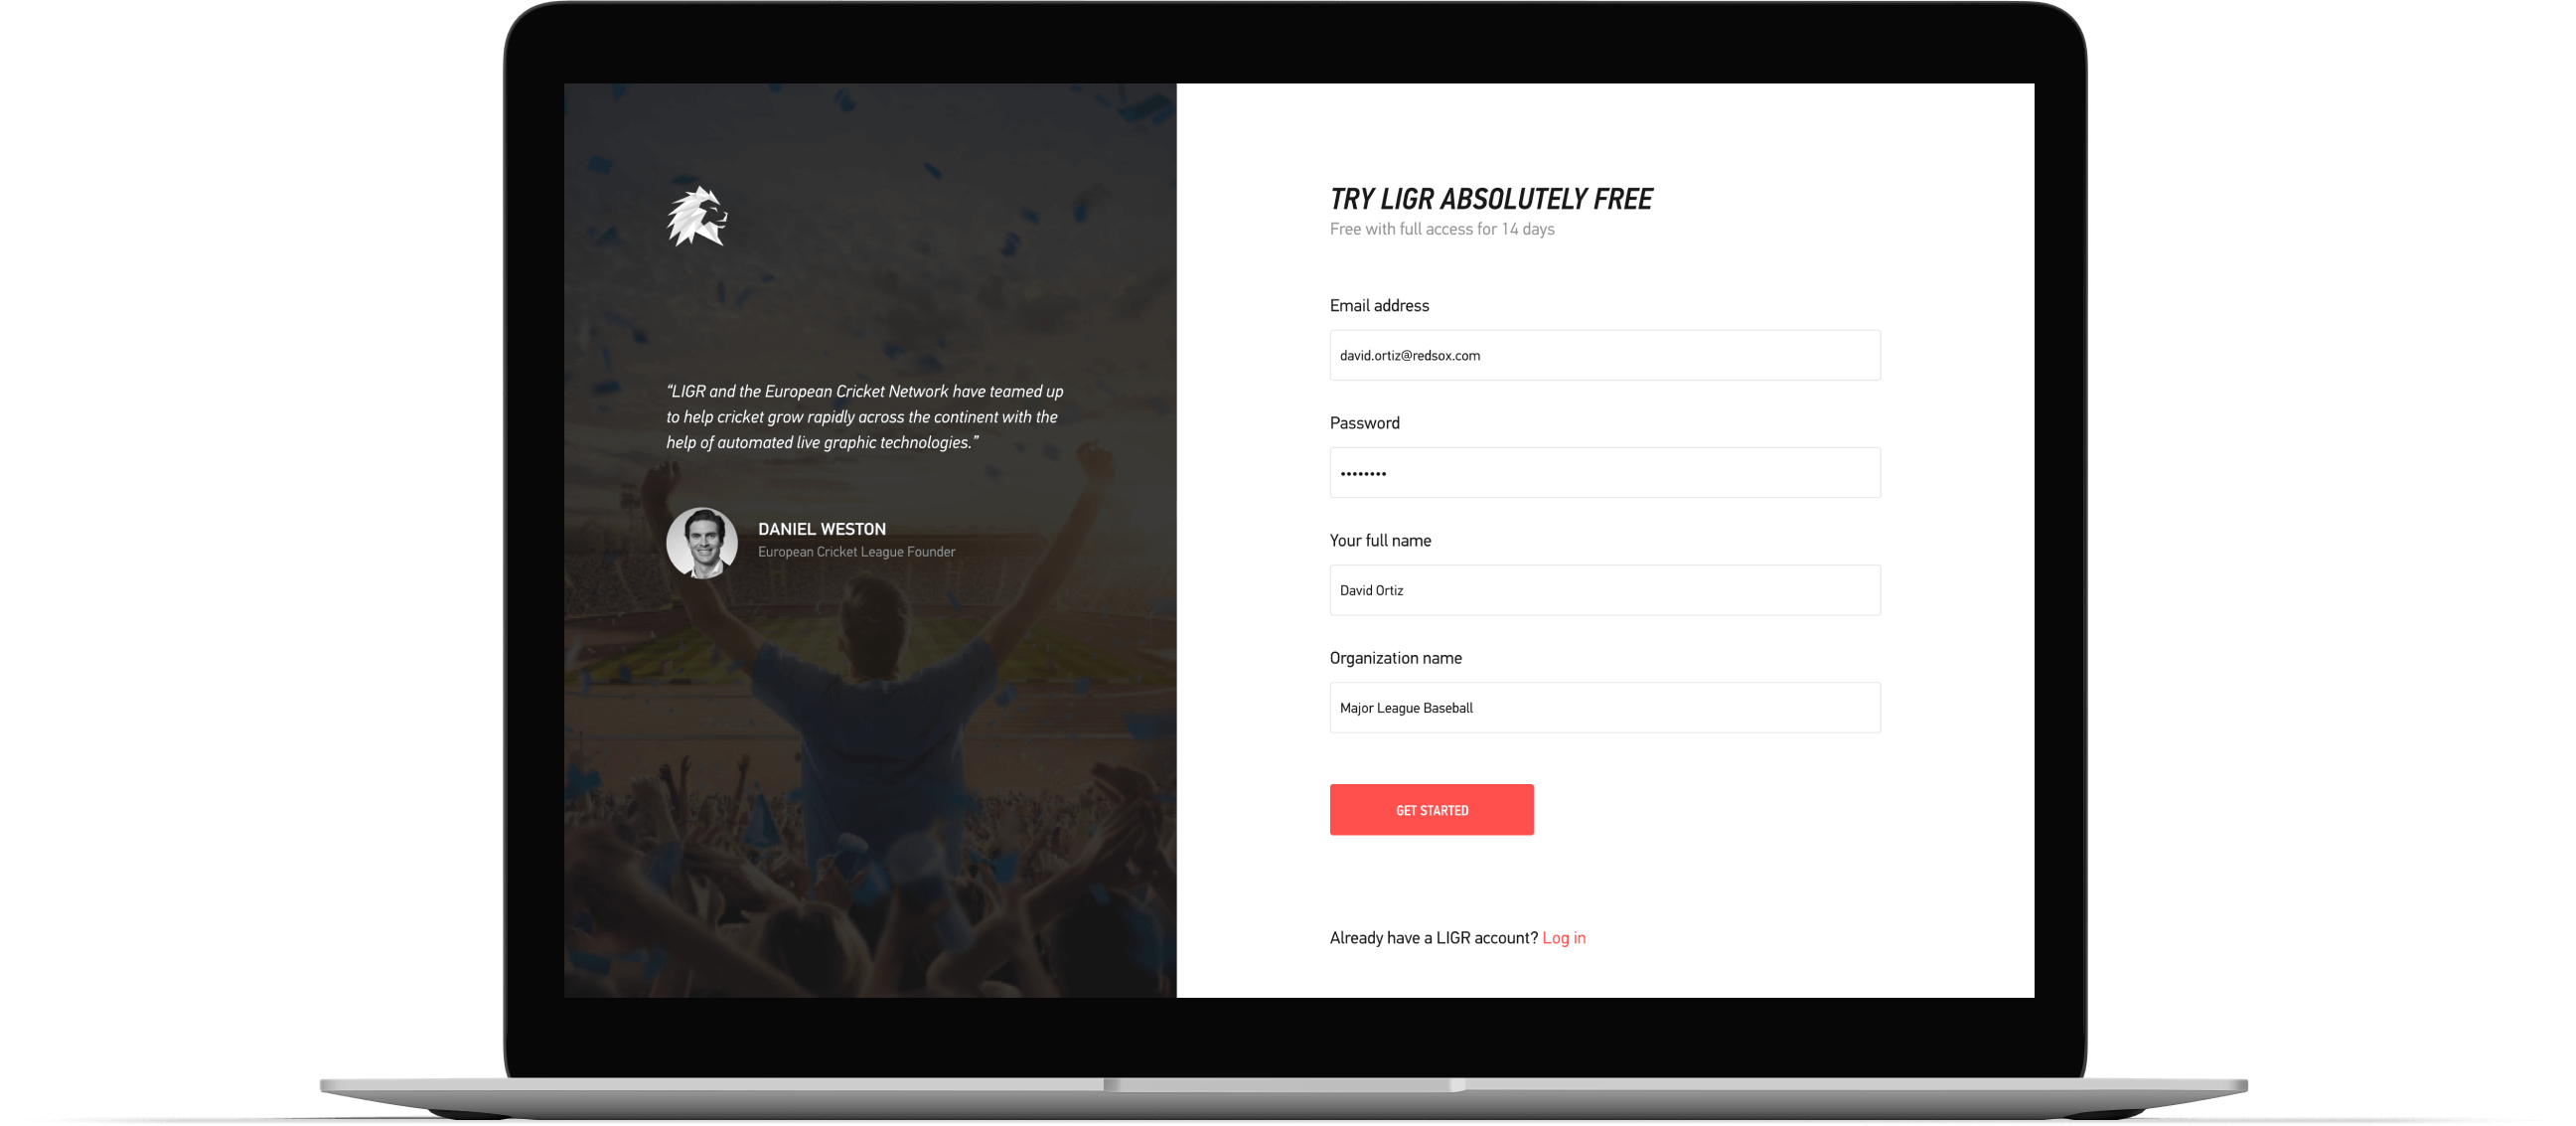 You are greeted with a stunning signup page - LIGR collects a few minor details and then you are on your way.